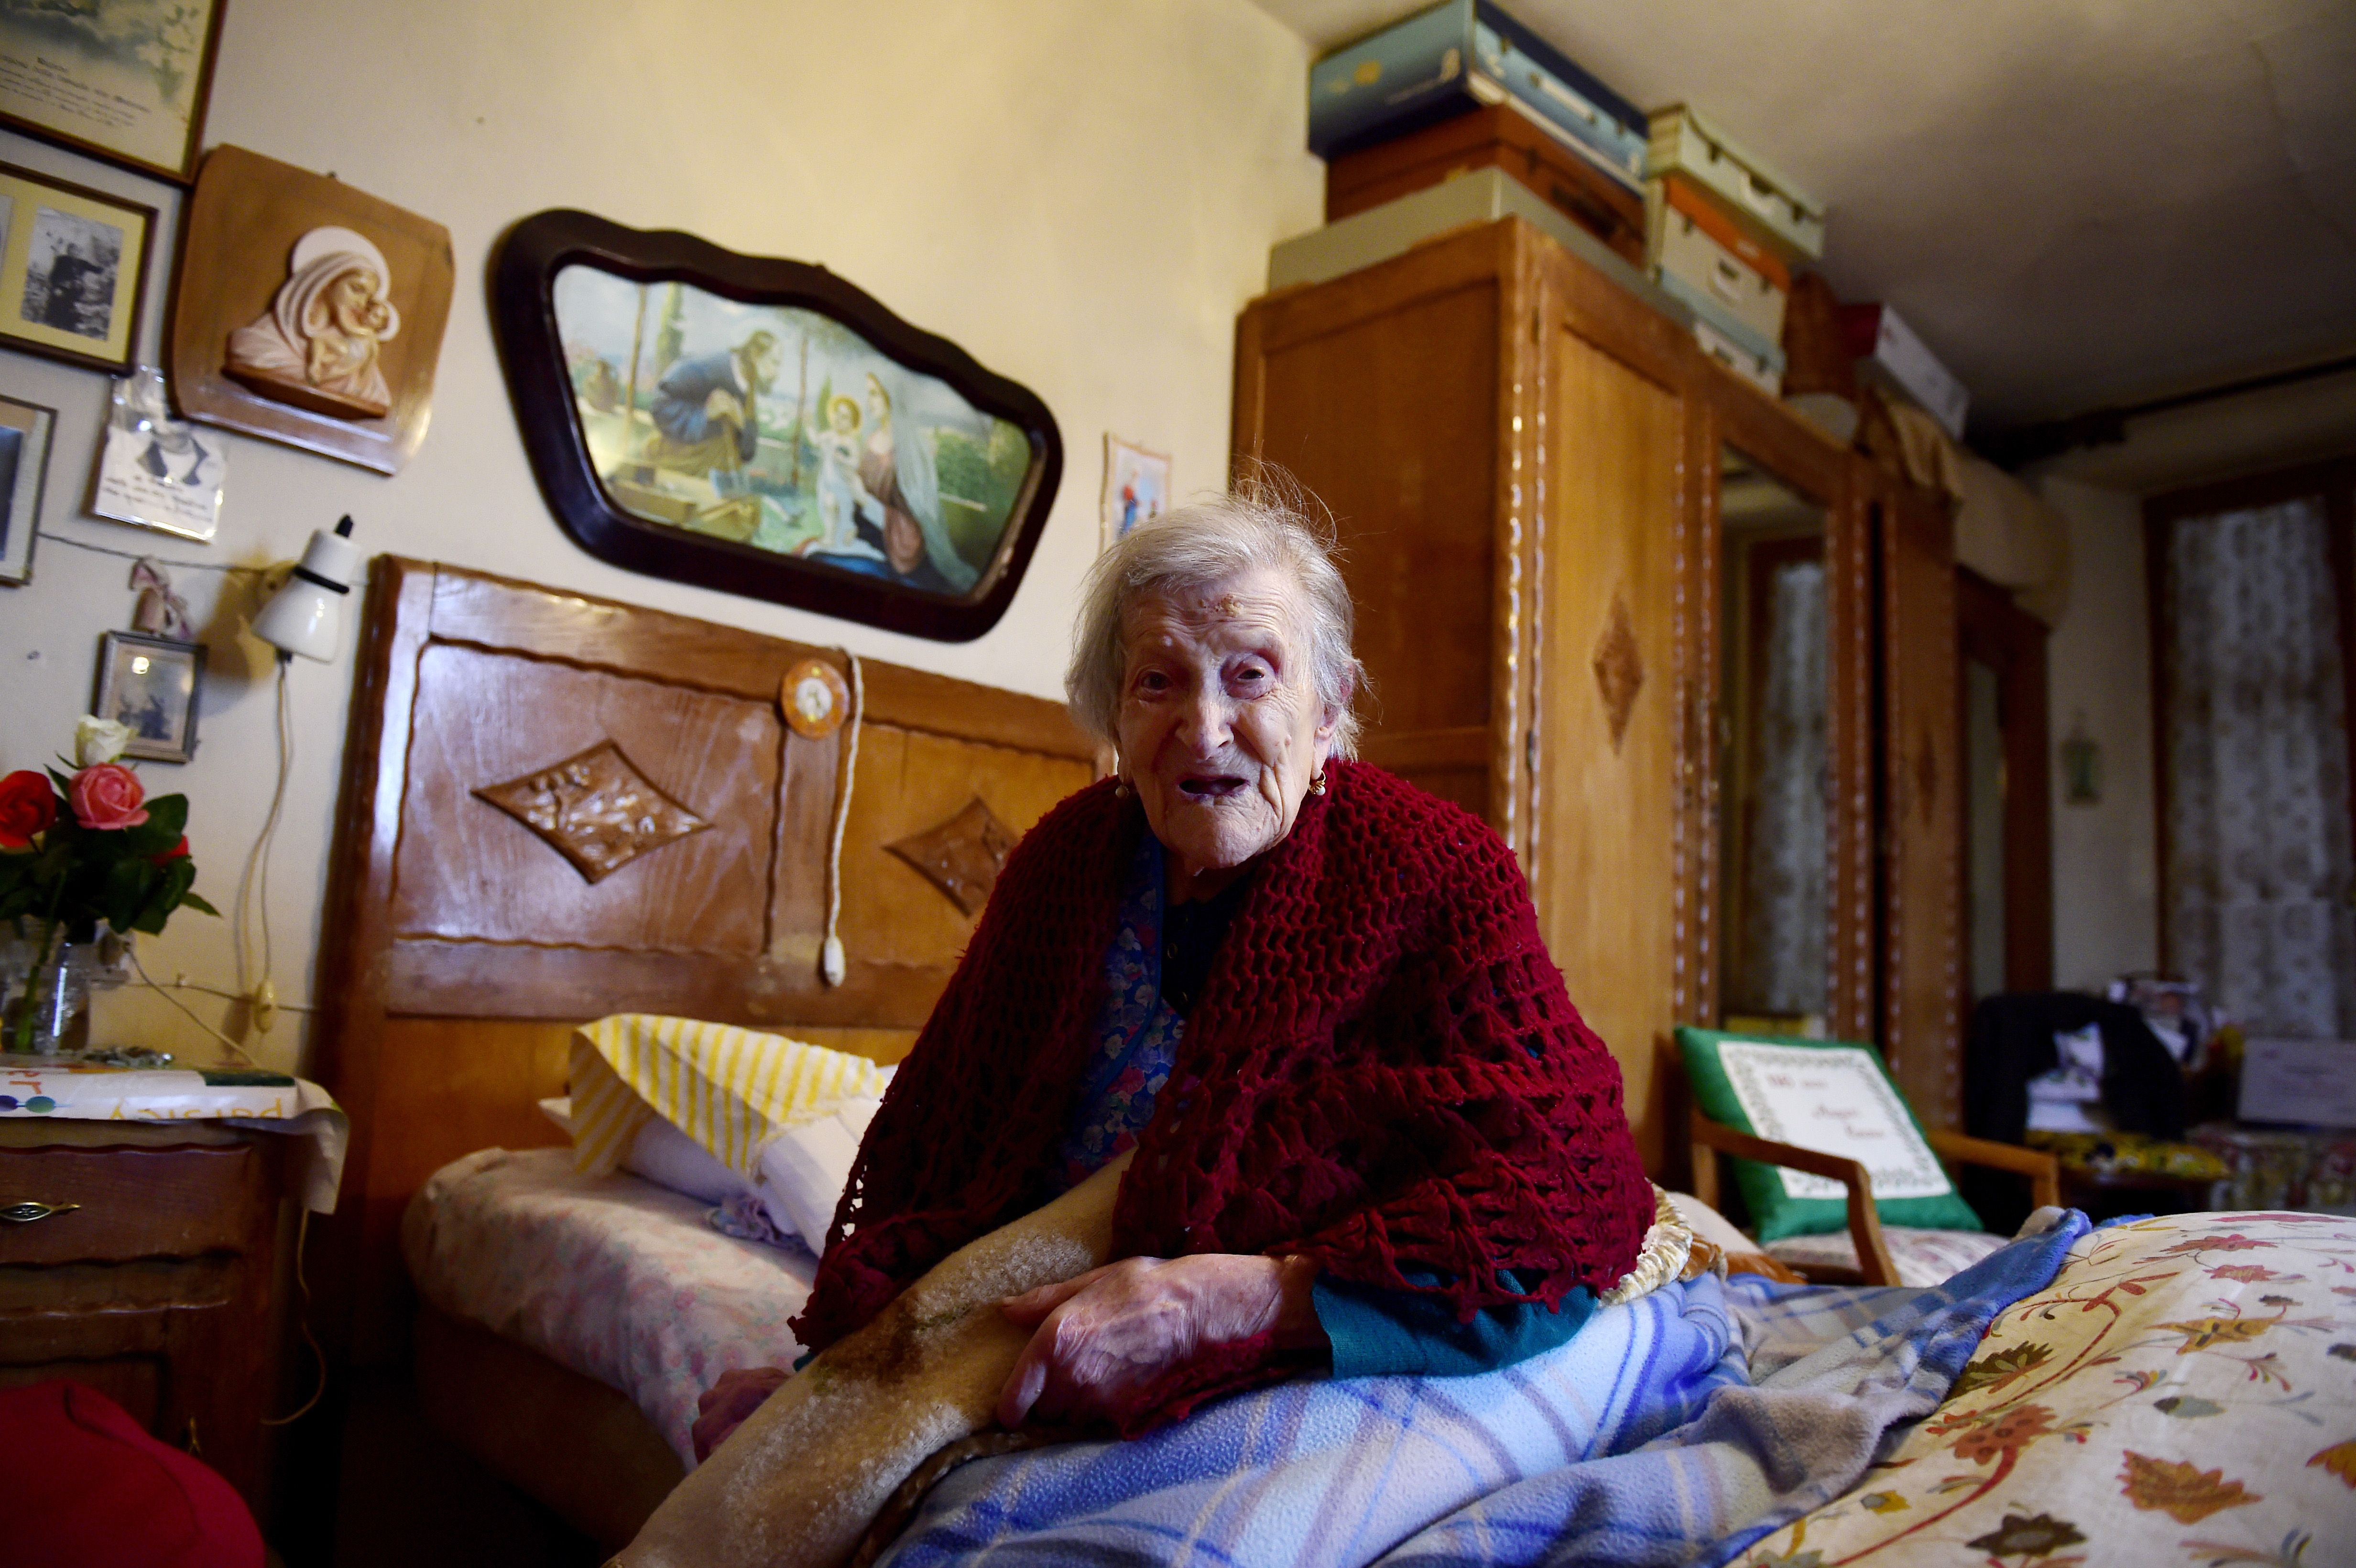 """Emma Morano, 116, holds a pillow reading """"116 years old, Happy Birthday Emma"""" as she poses for AFP photographer in Verbania, North Italy, on May 14, 2016. Emma Morano is the oldest living person in the world, and the only one left who has touched three centuries. Susannah Mushatt Jones, a New York woman several months her senior, died on May 12 evening, making Morano the world's oldest known person at 116. / AFP / OLIVIER MORIN (Photo credit should read OLIVIER MORIN/AFP/Getty Images)"""